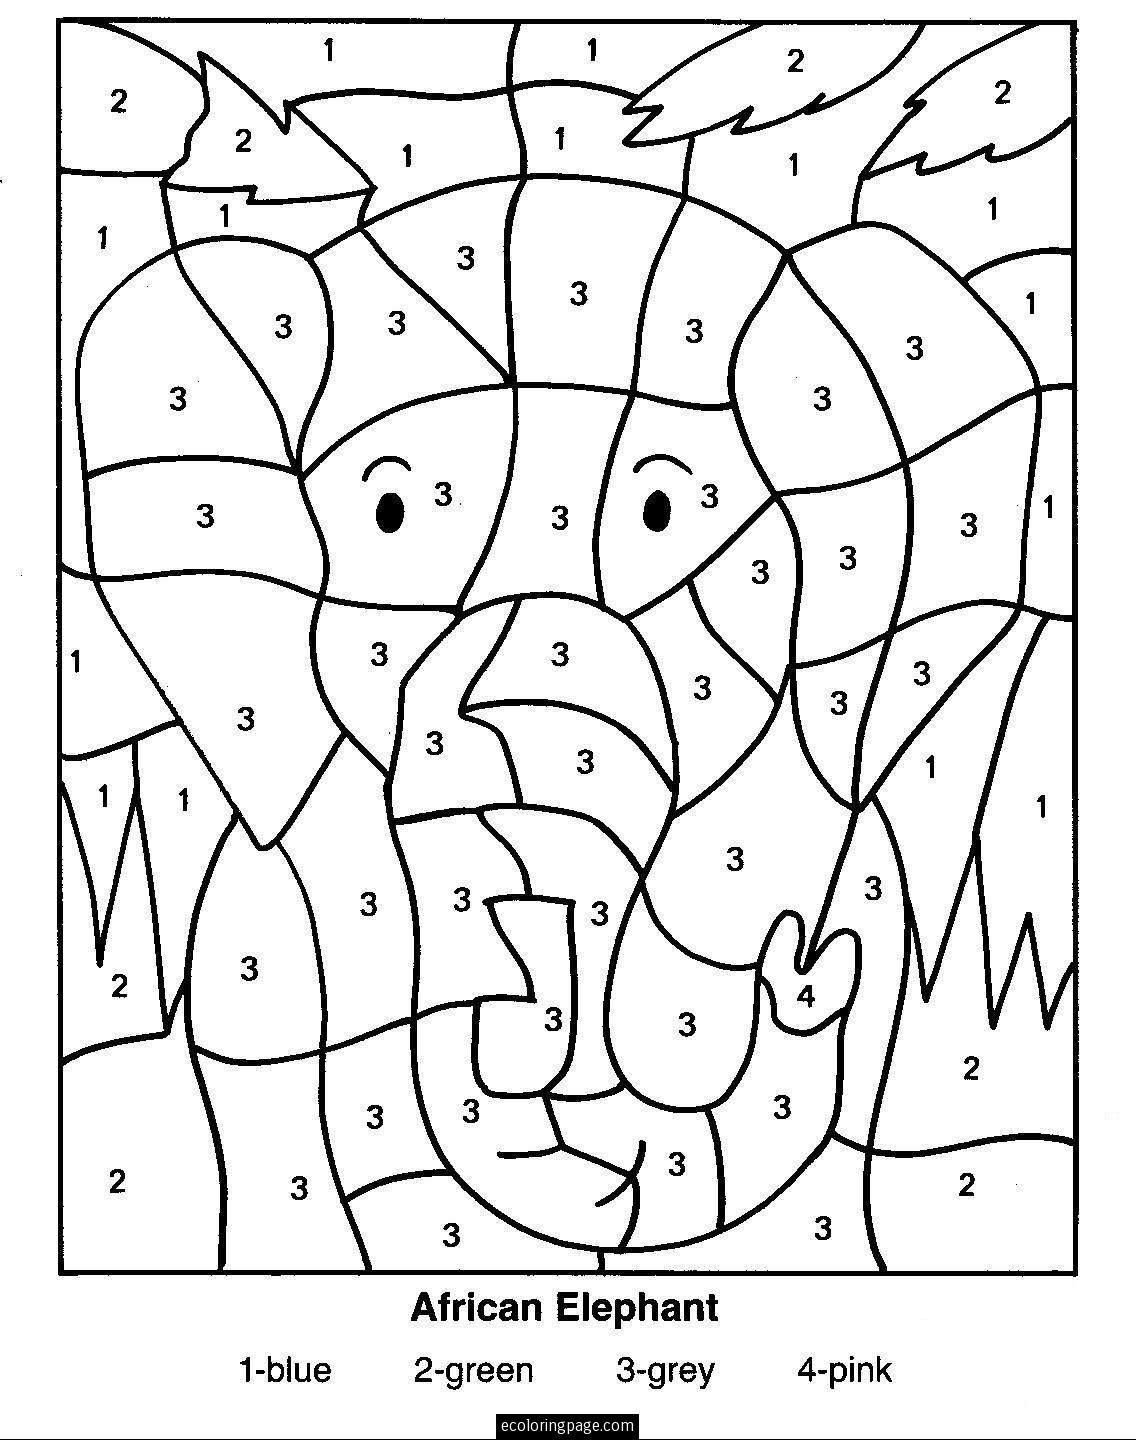 coloring with numbers printable difficult color by number printables coloring home with coloring numbers printable